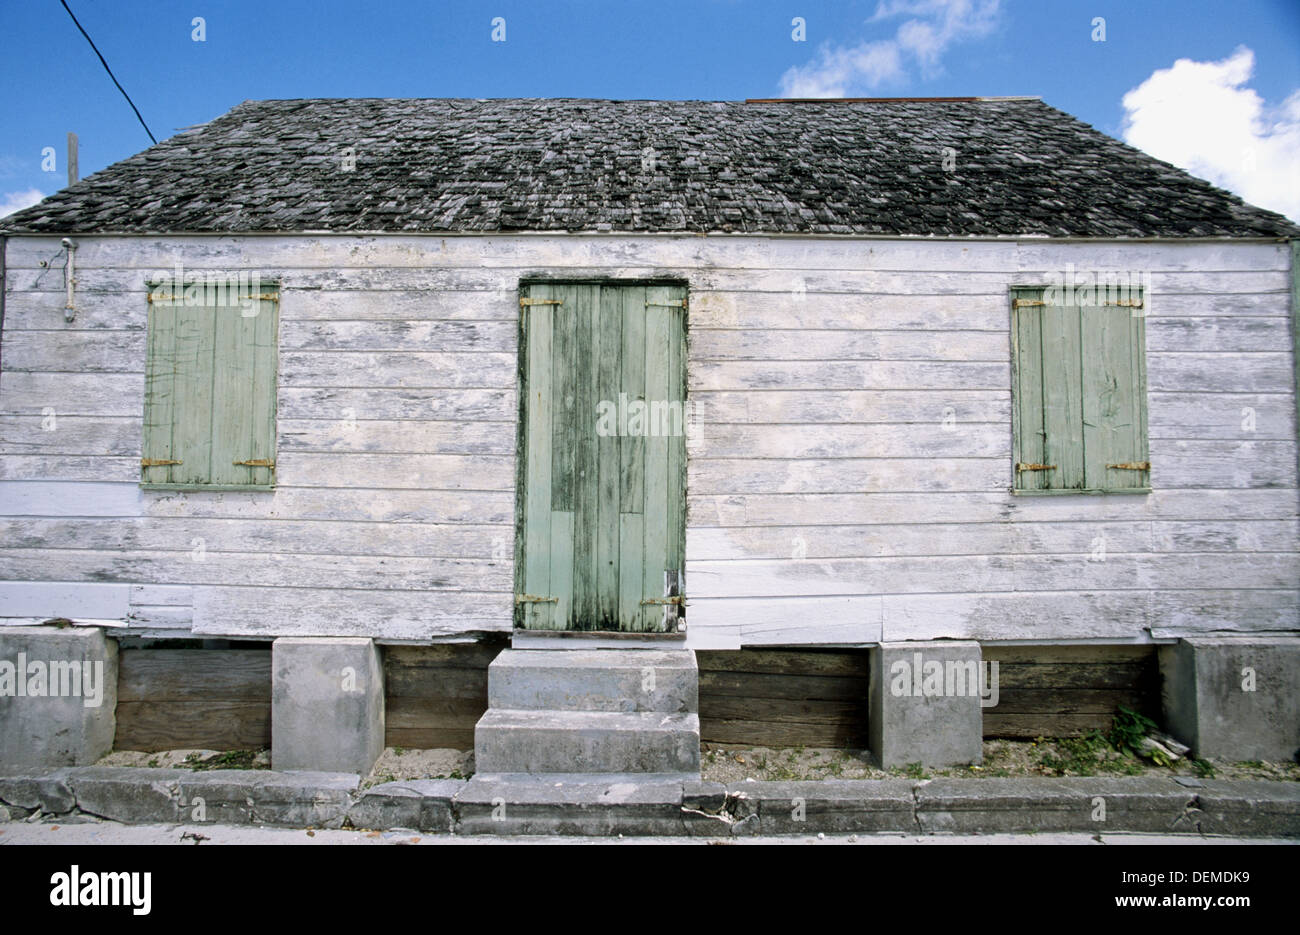 This Little Unrestored Saltbox House Is Typical Of The 19th Century New England Style Architecture Found In Abaco Chain